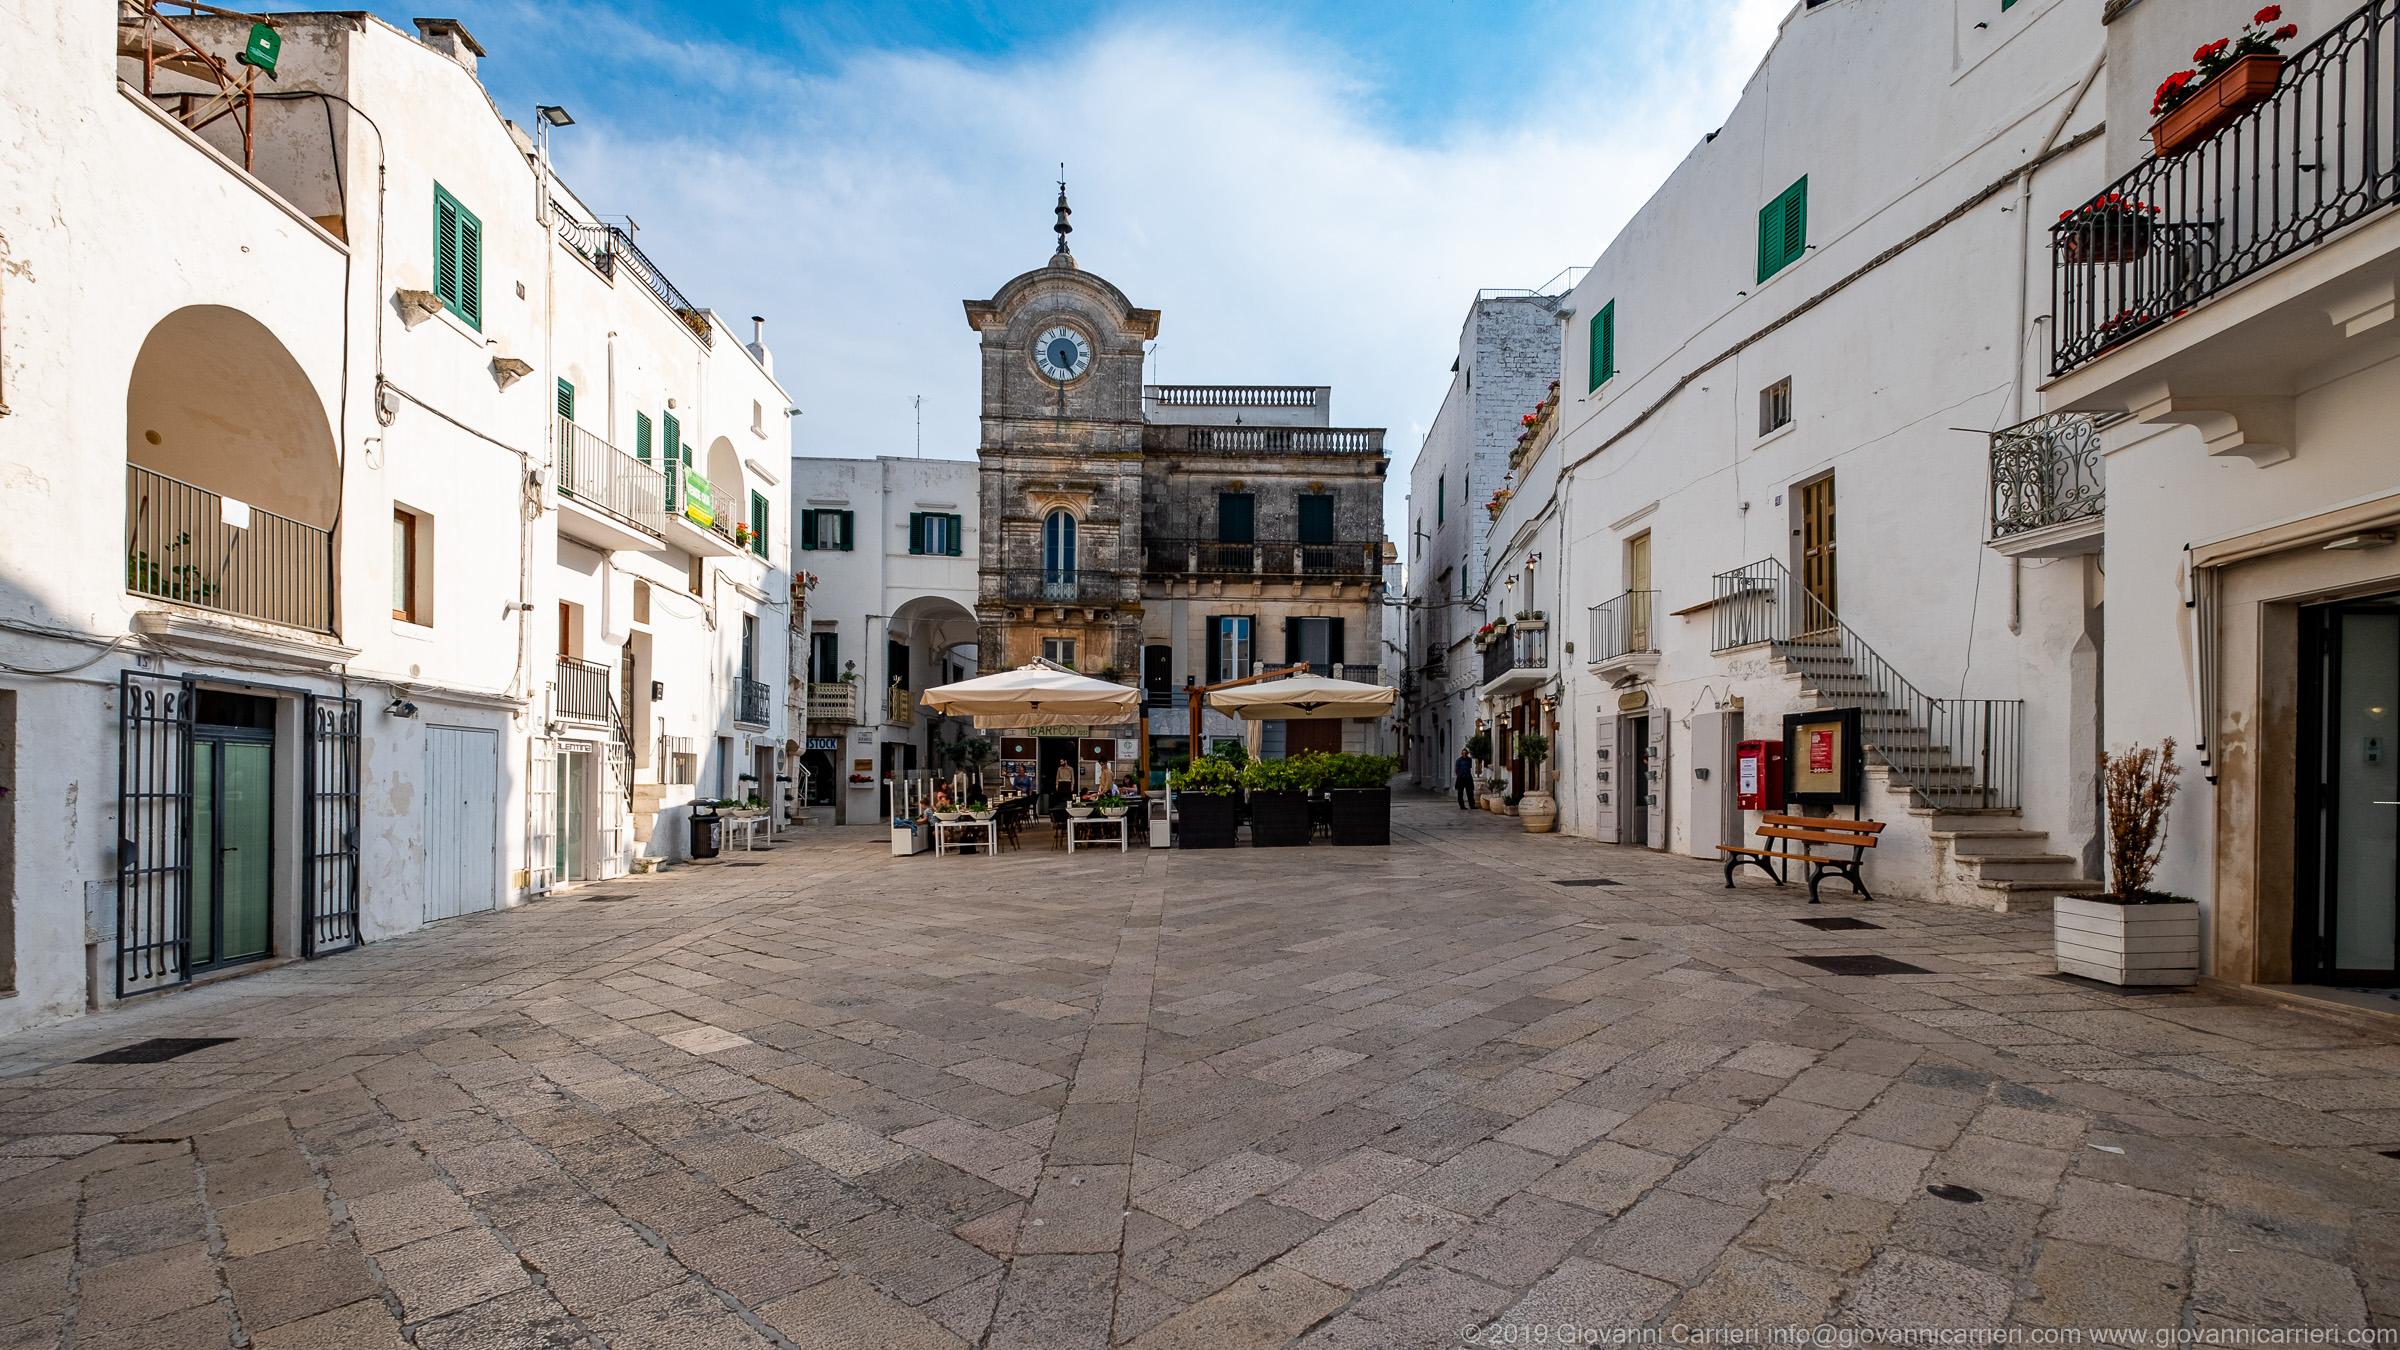 Photographs of Cisternino